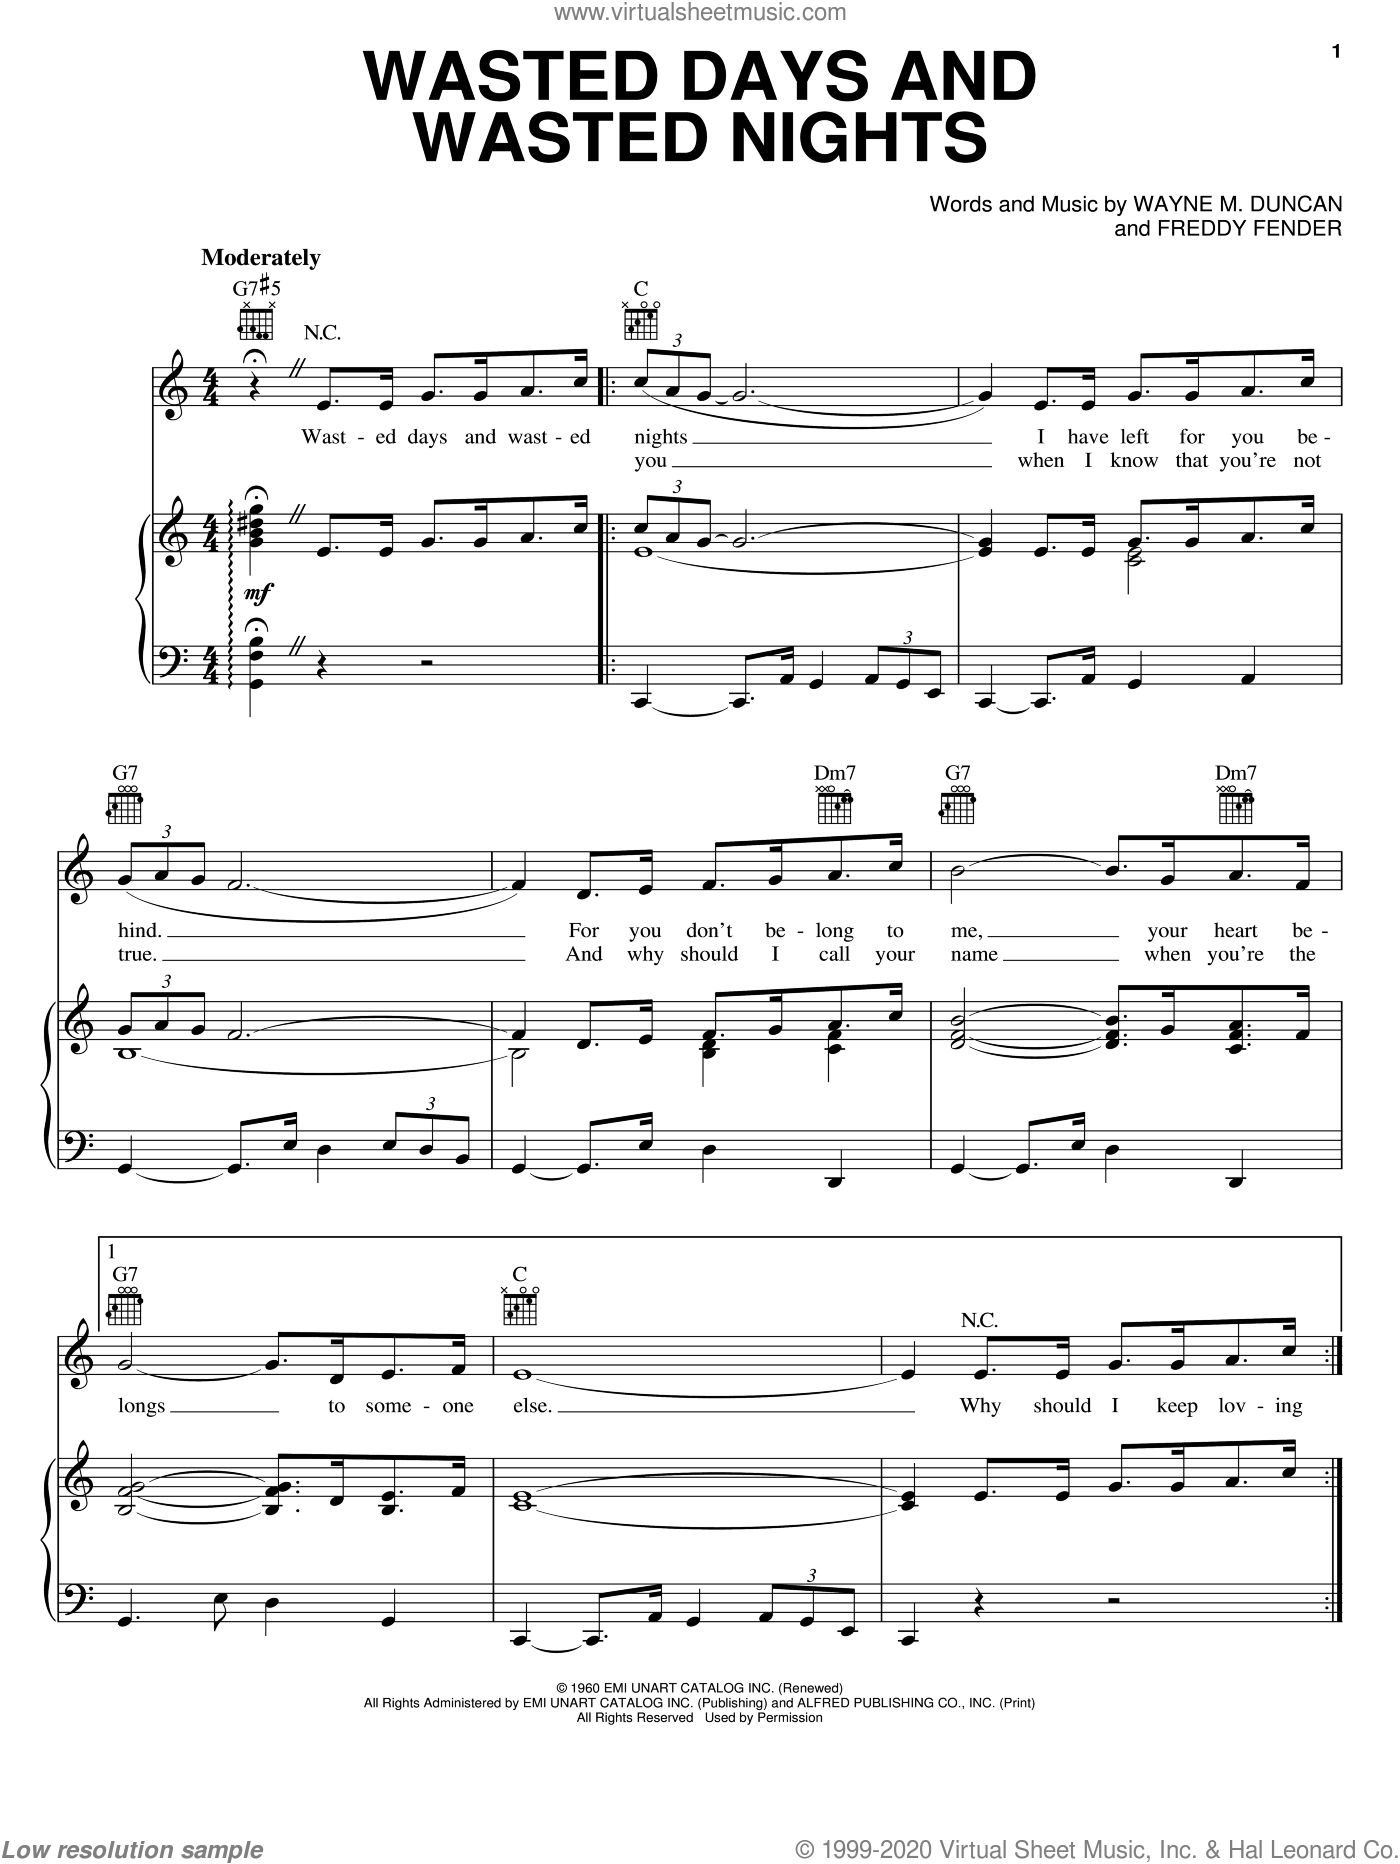 Wasted Days And Wasted Nights sheet music for voice, piano or guitar by Freddy Fender and Wayne M. Duncan. Score Image Preview.